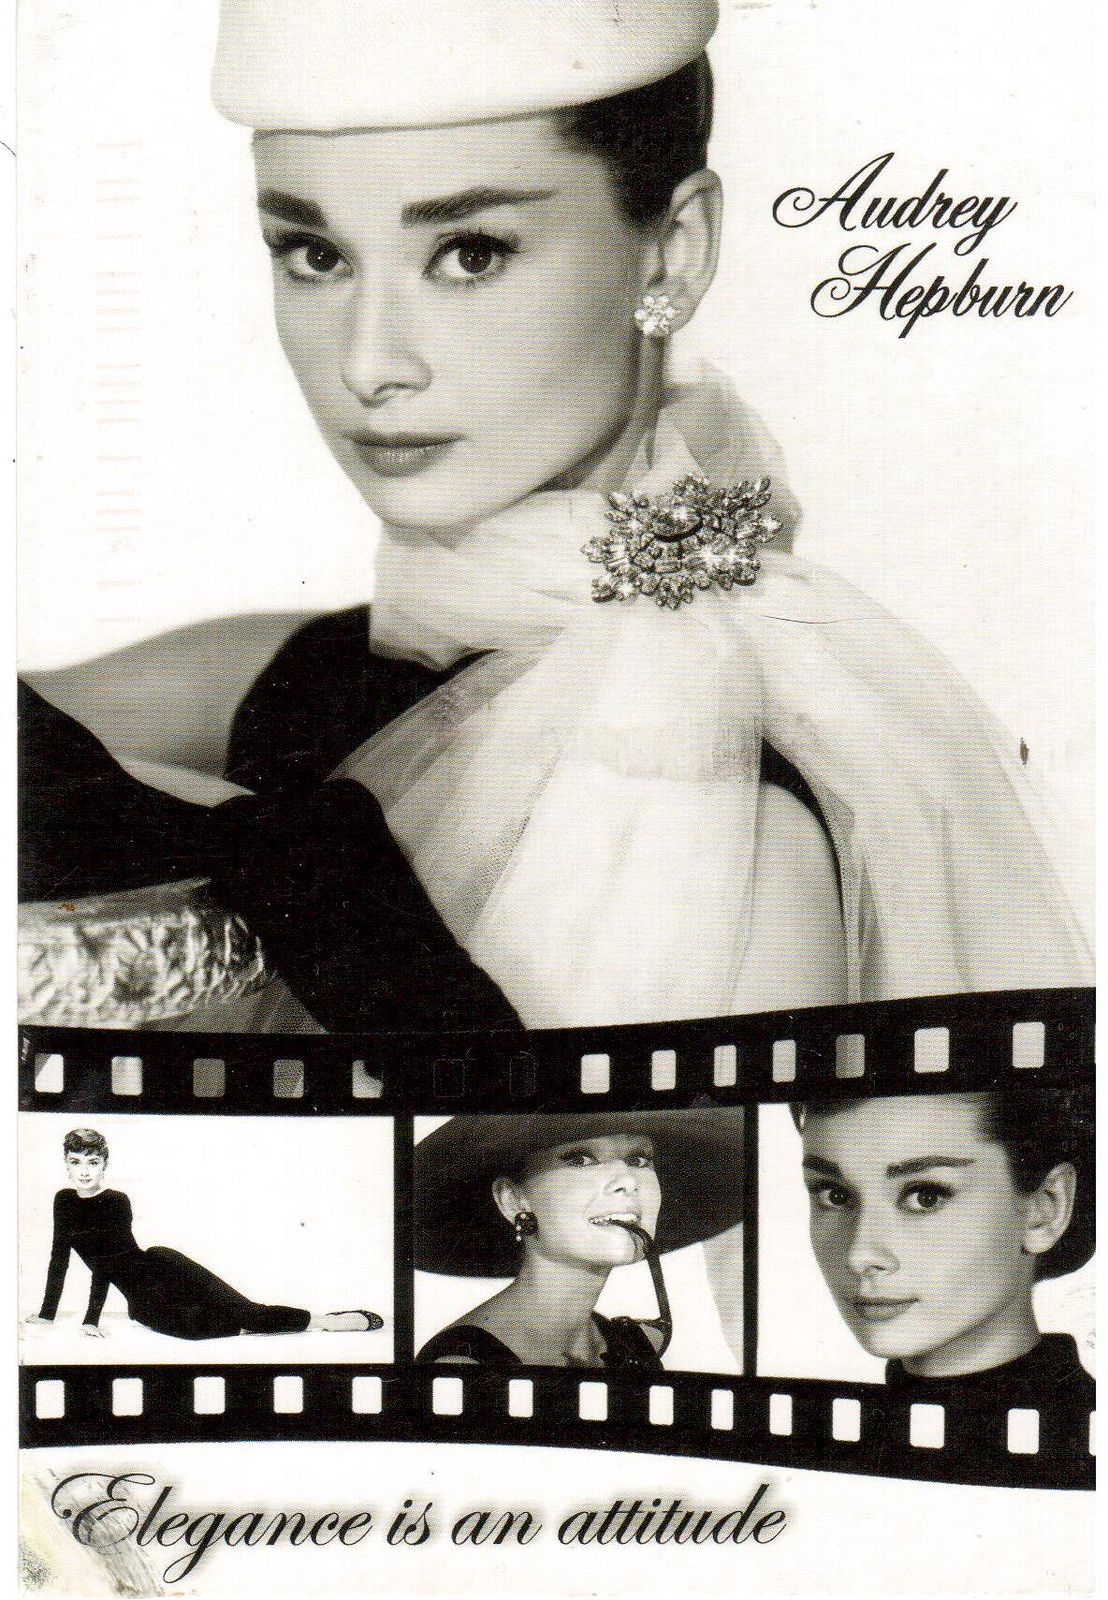 Postcrossing RU-3010047 - Black and white multiview postcard of movie star Audrey Hepburn.  Sent by Postcrosser in Russia.